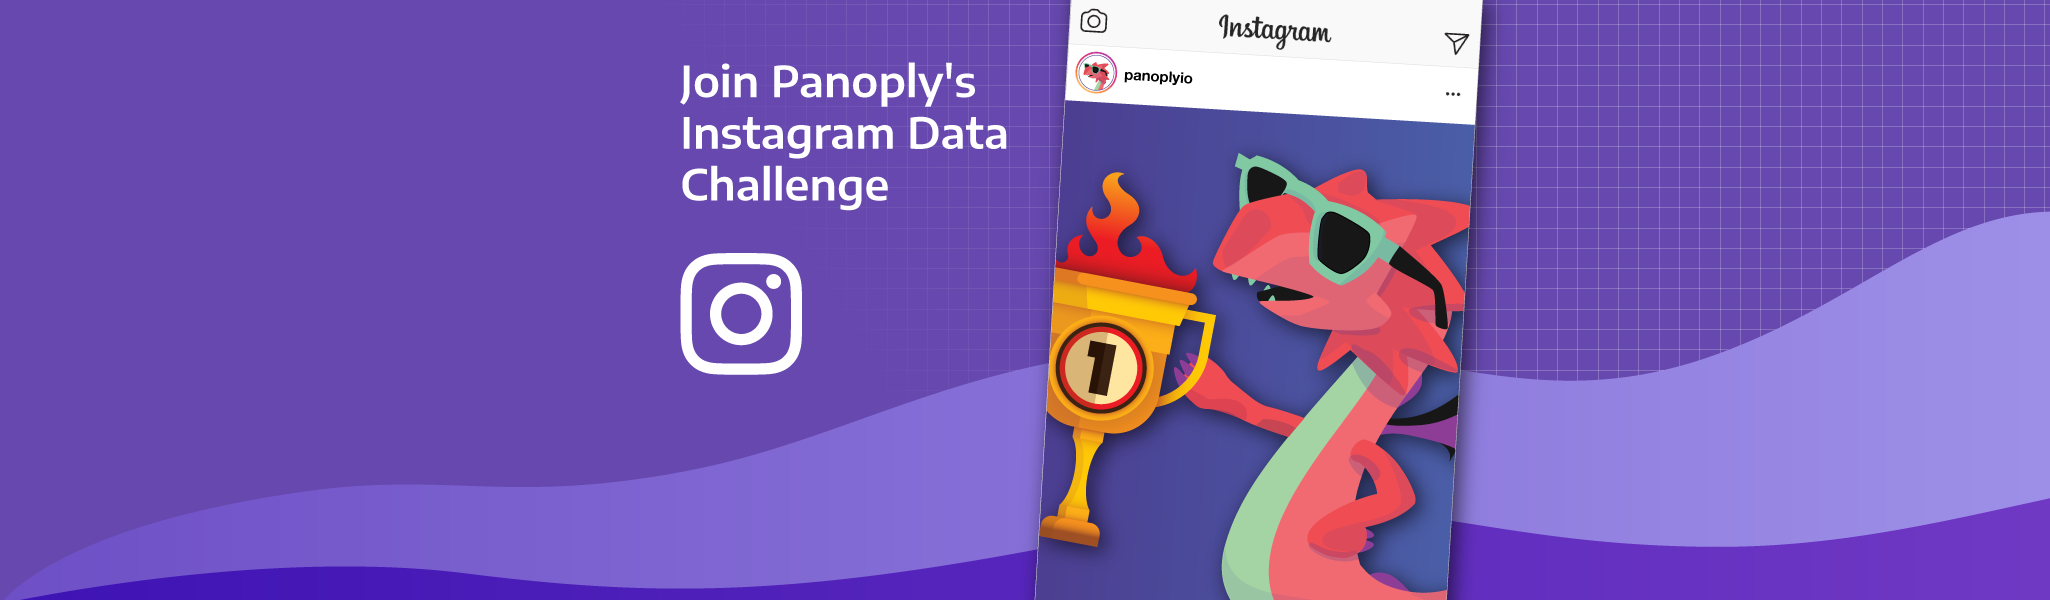 Instagram Data Analysis Using Panoply and Mode - Towards